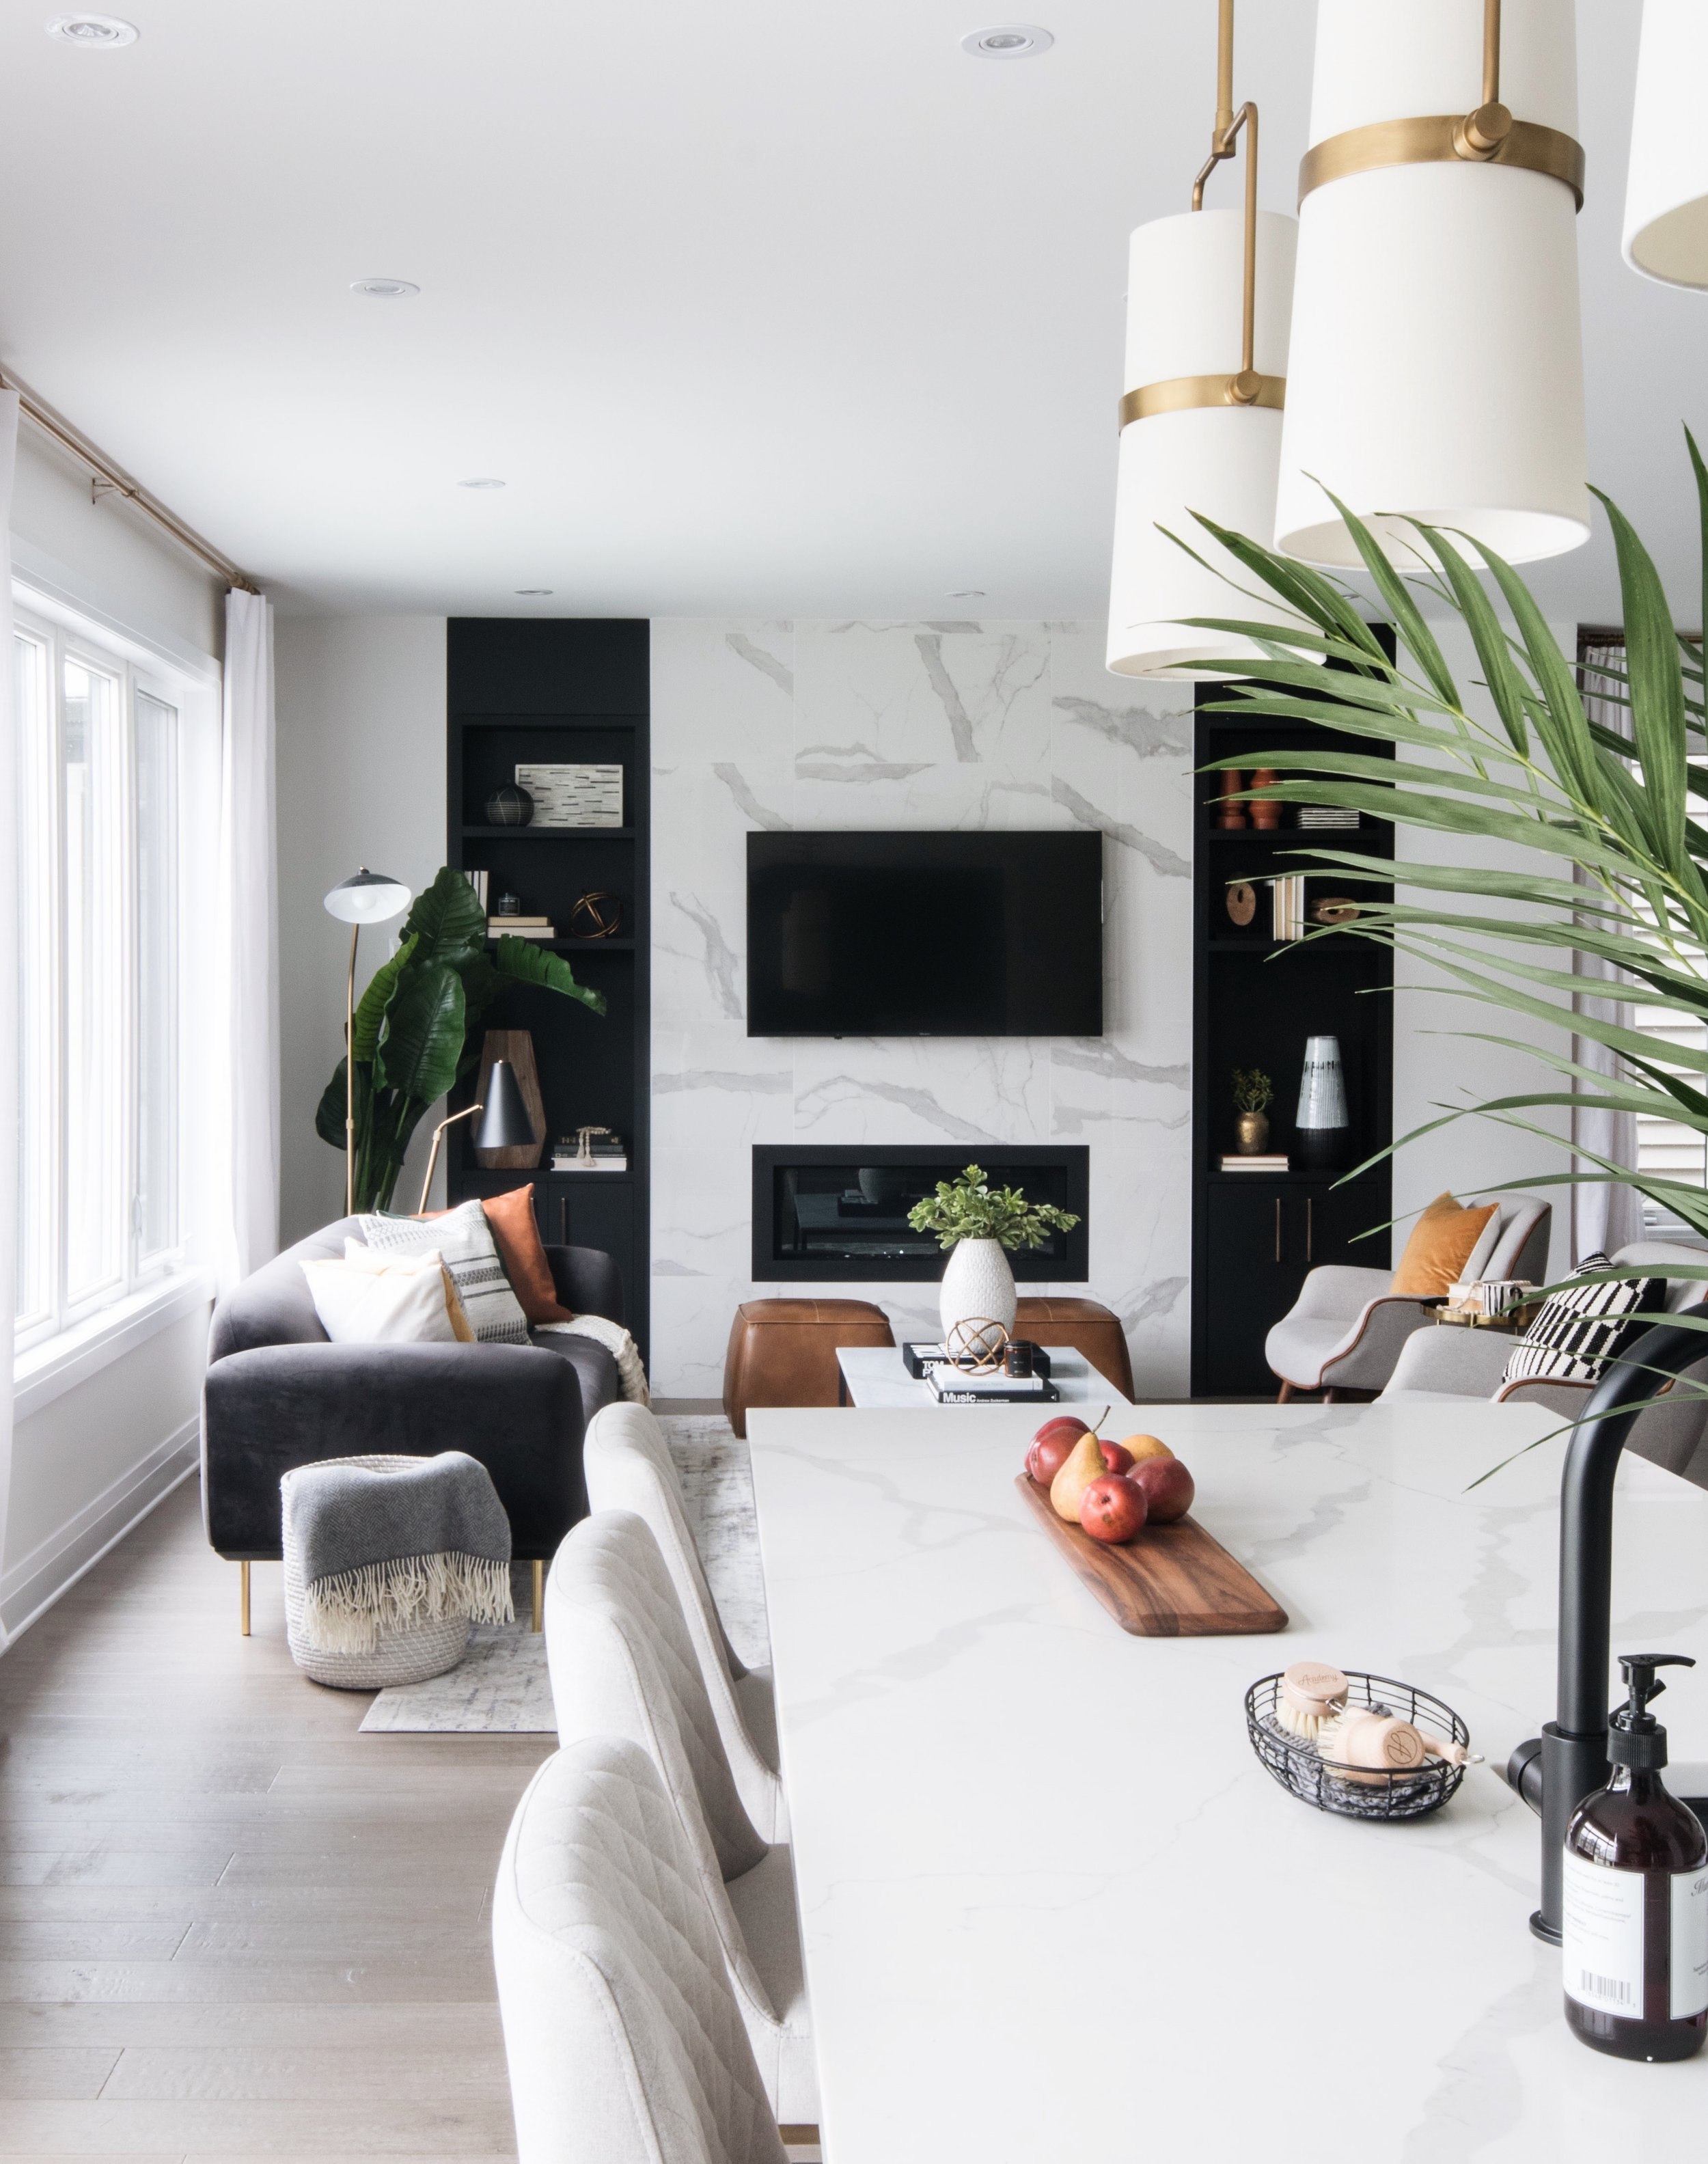 A home that feels sleek and cool, but still approachable by Ottawa Interior Design firm Leclair Decor. The perfect embodiment of their signature warm modern aesthetic.